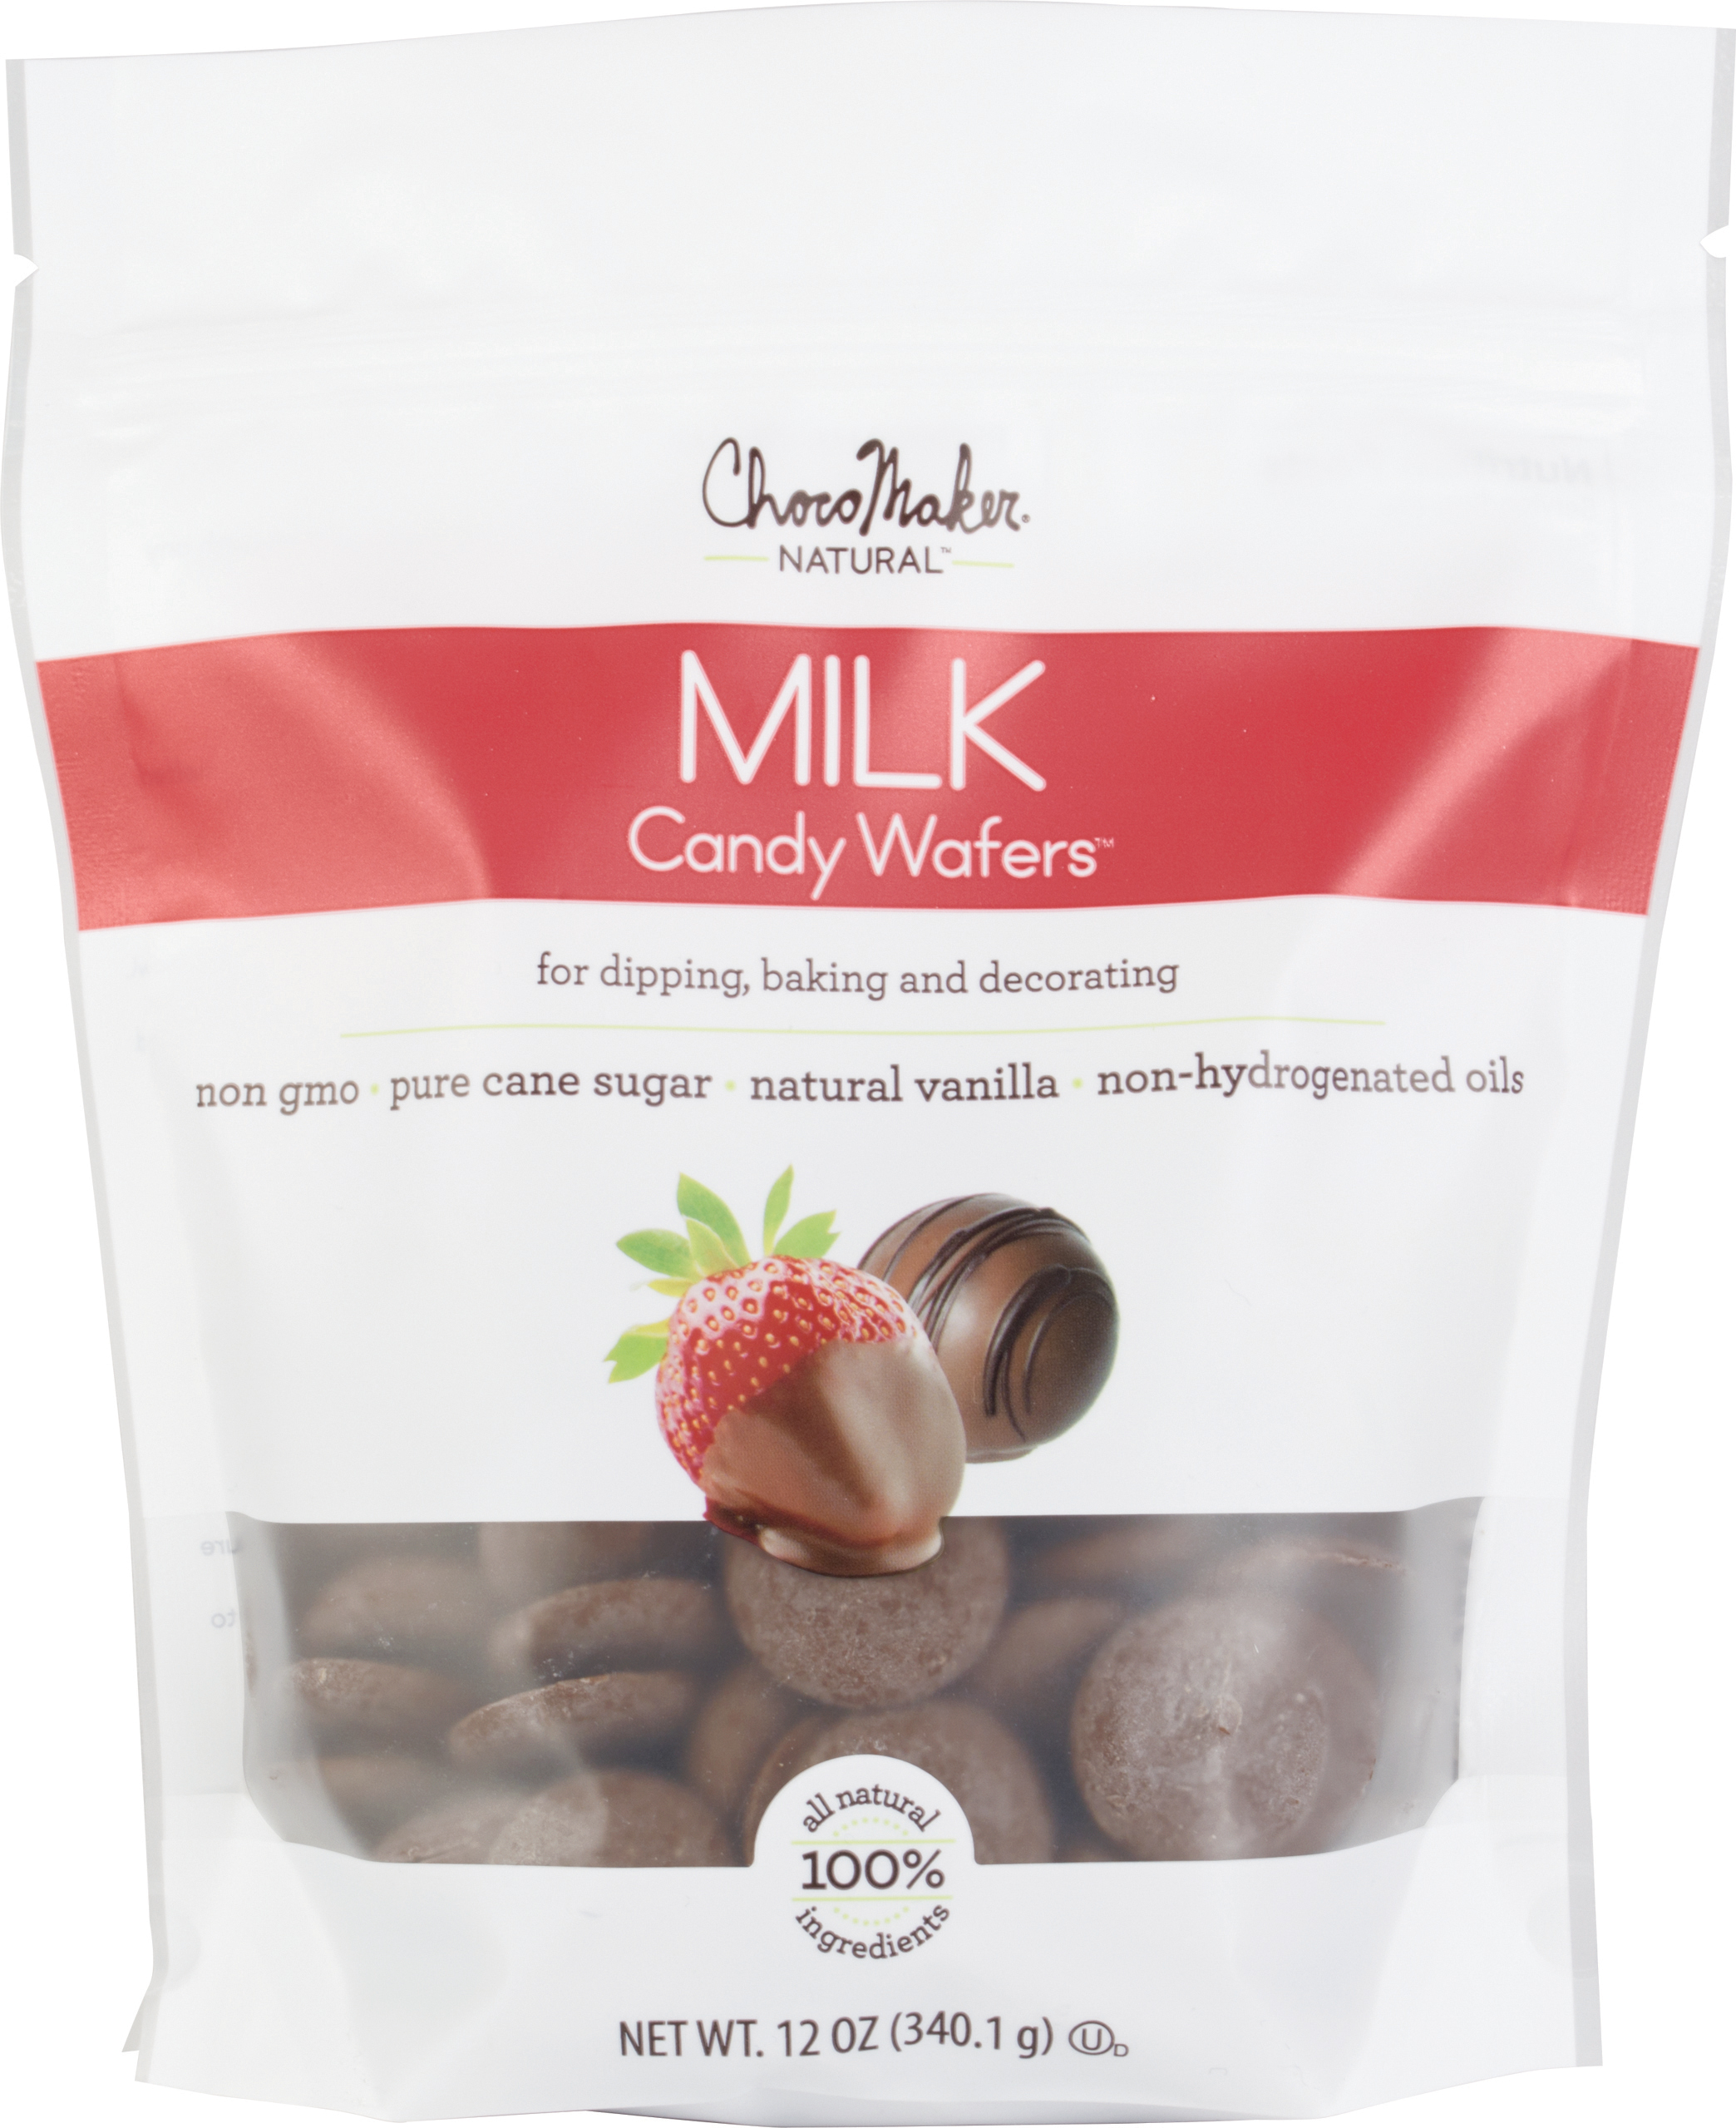 Milk - ChocoMaker(R) Natural Chocolate Candy Wafers 12oz Pouch